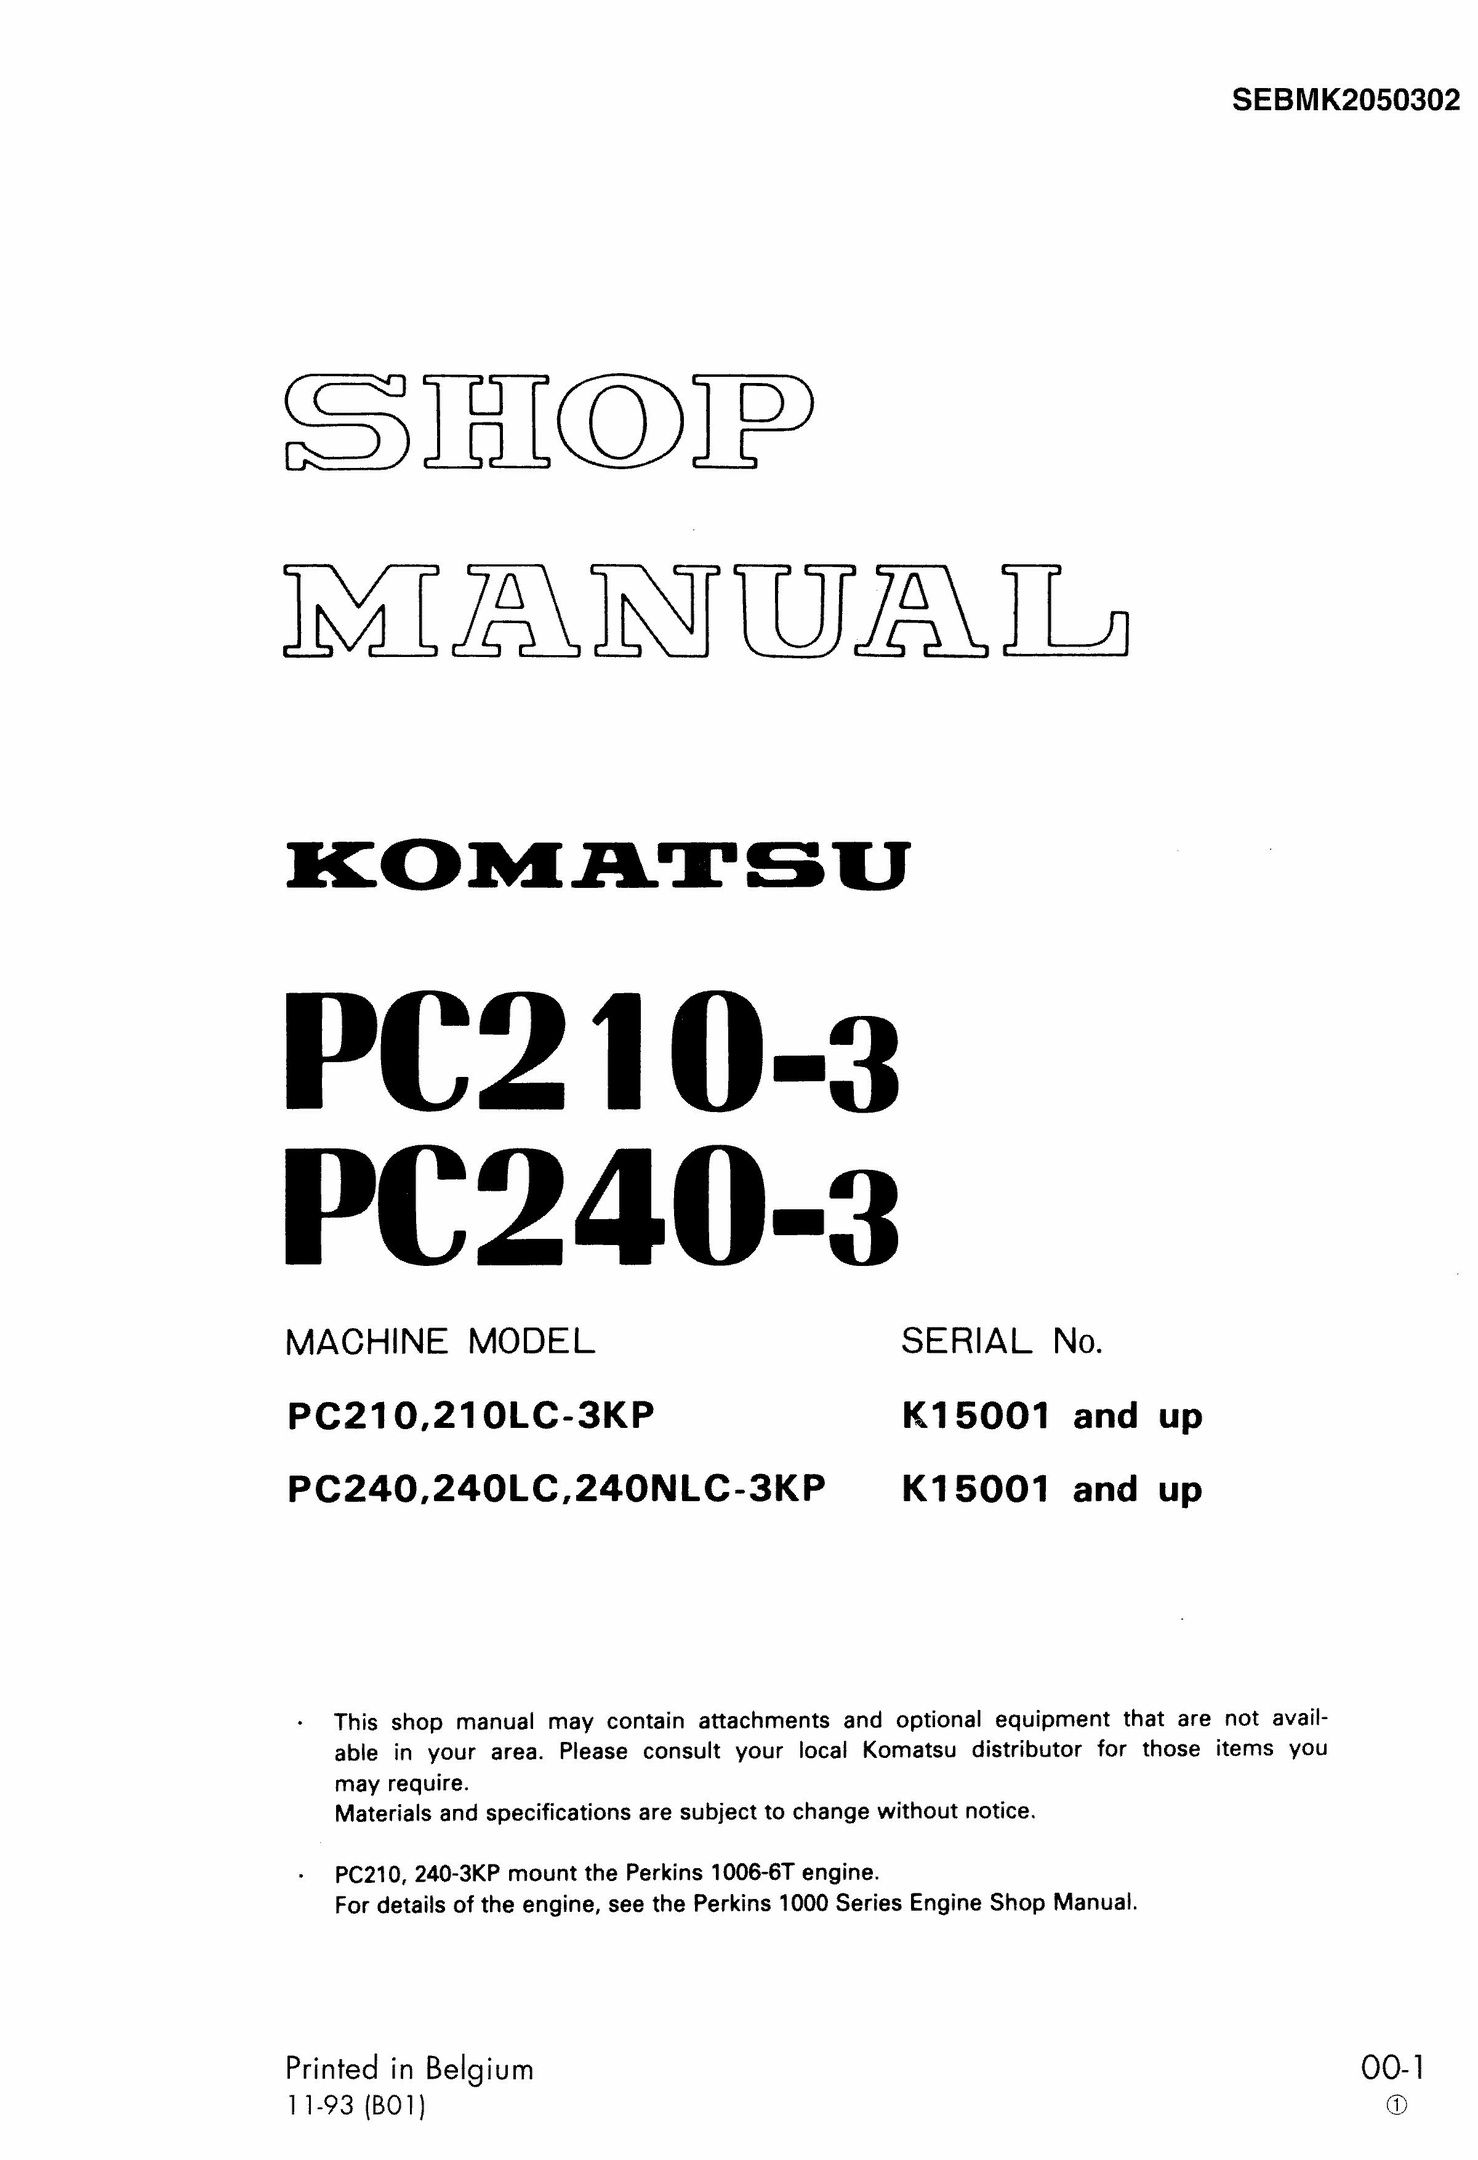 Komatsu 45 forklift service manual ebook ebook tempower us array komatsu pc210 3kp pc240nlc 3kp excavator service shop manual rh pinterest com fandeluxe Image collections